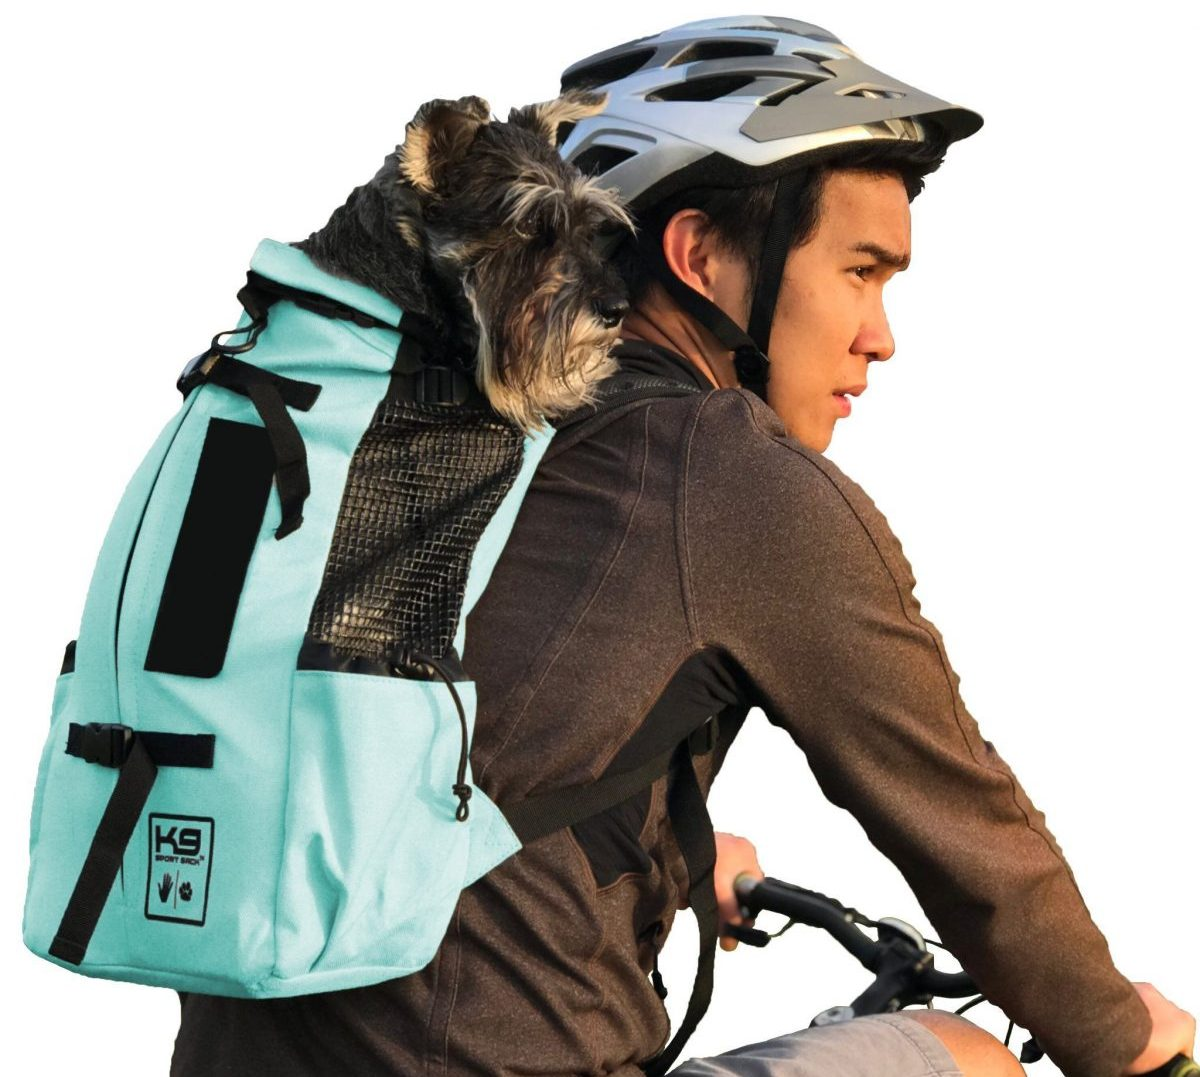 Photo of the K9 Sport Sack AIR in mint green carrying a black Terrier on a cyclist's back who is wearing a grey helmet, a brown long-sleeved top, and grey shorts on a bicycle